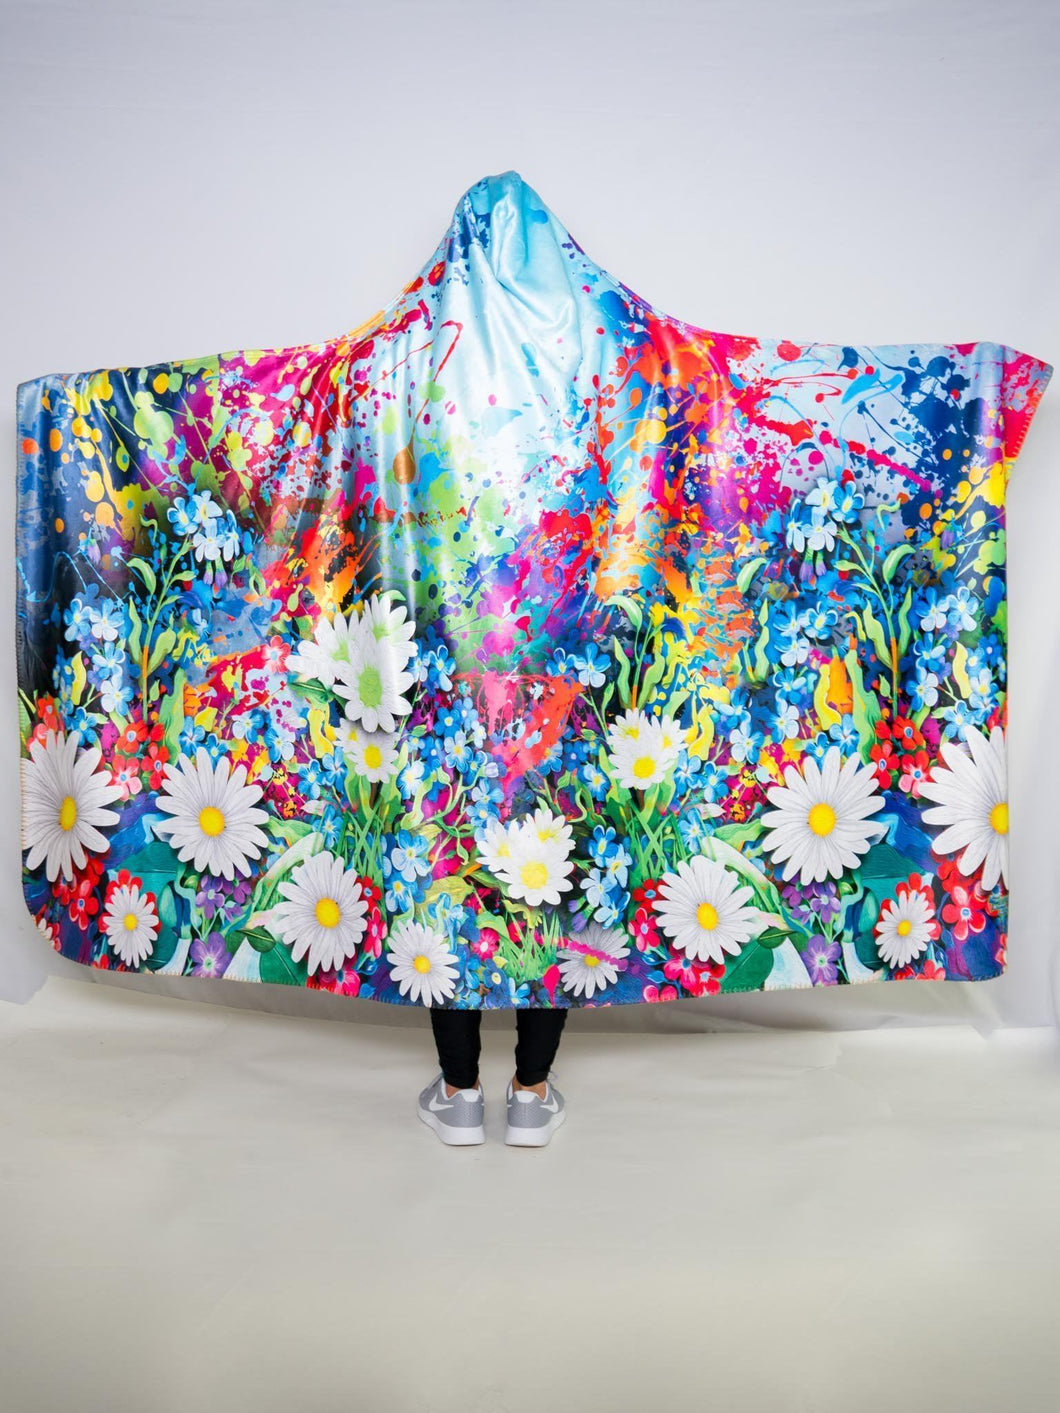 Painted Daisy Design Hooded Blanket